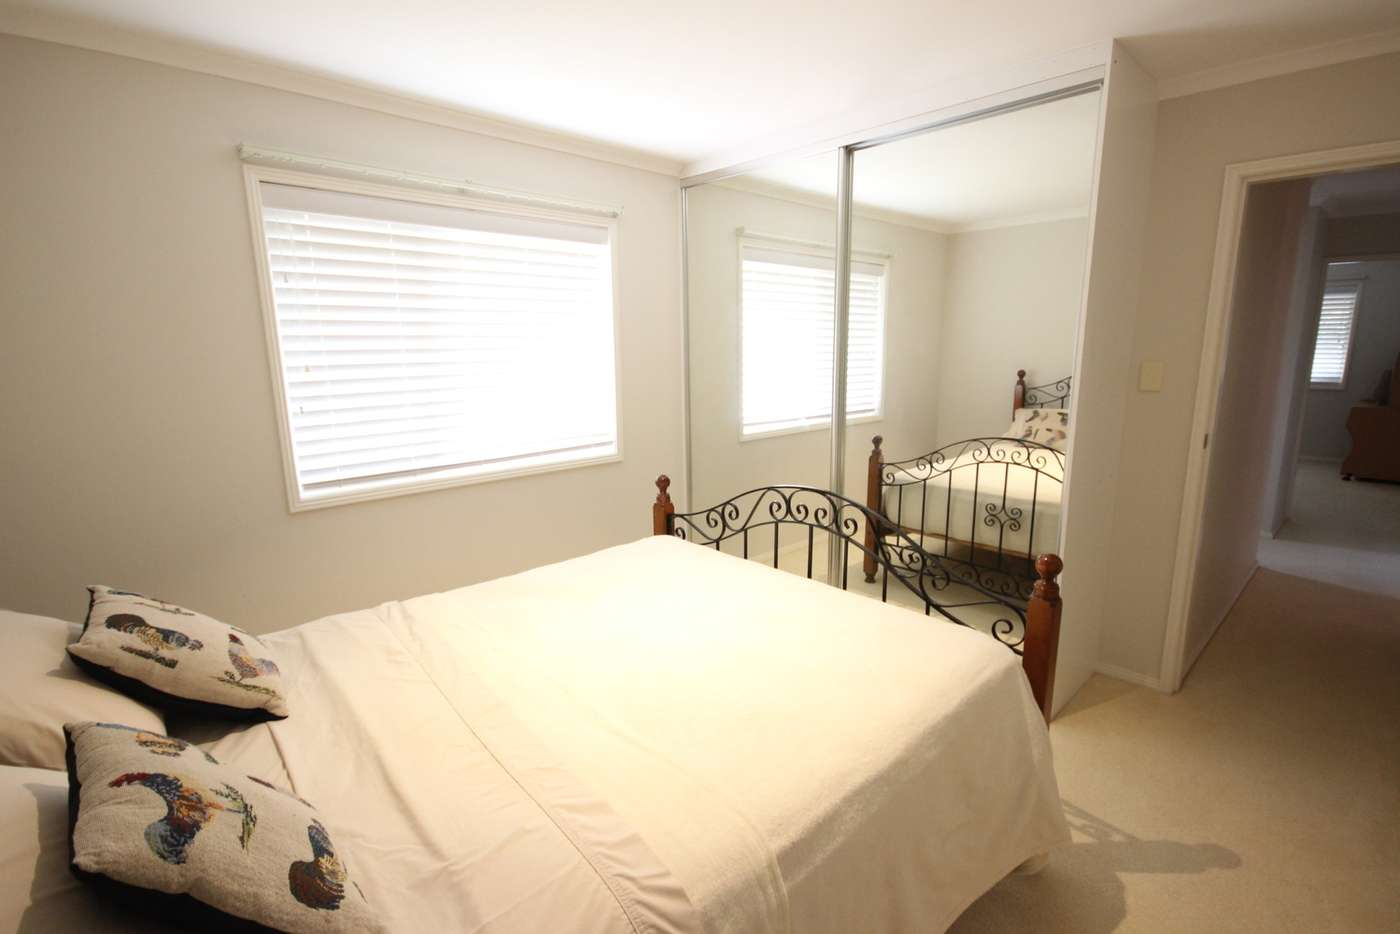 Sixth view of Homely house listing, 8 Third Ridge Road, Smiths Lake NSW 2428